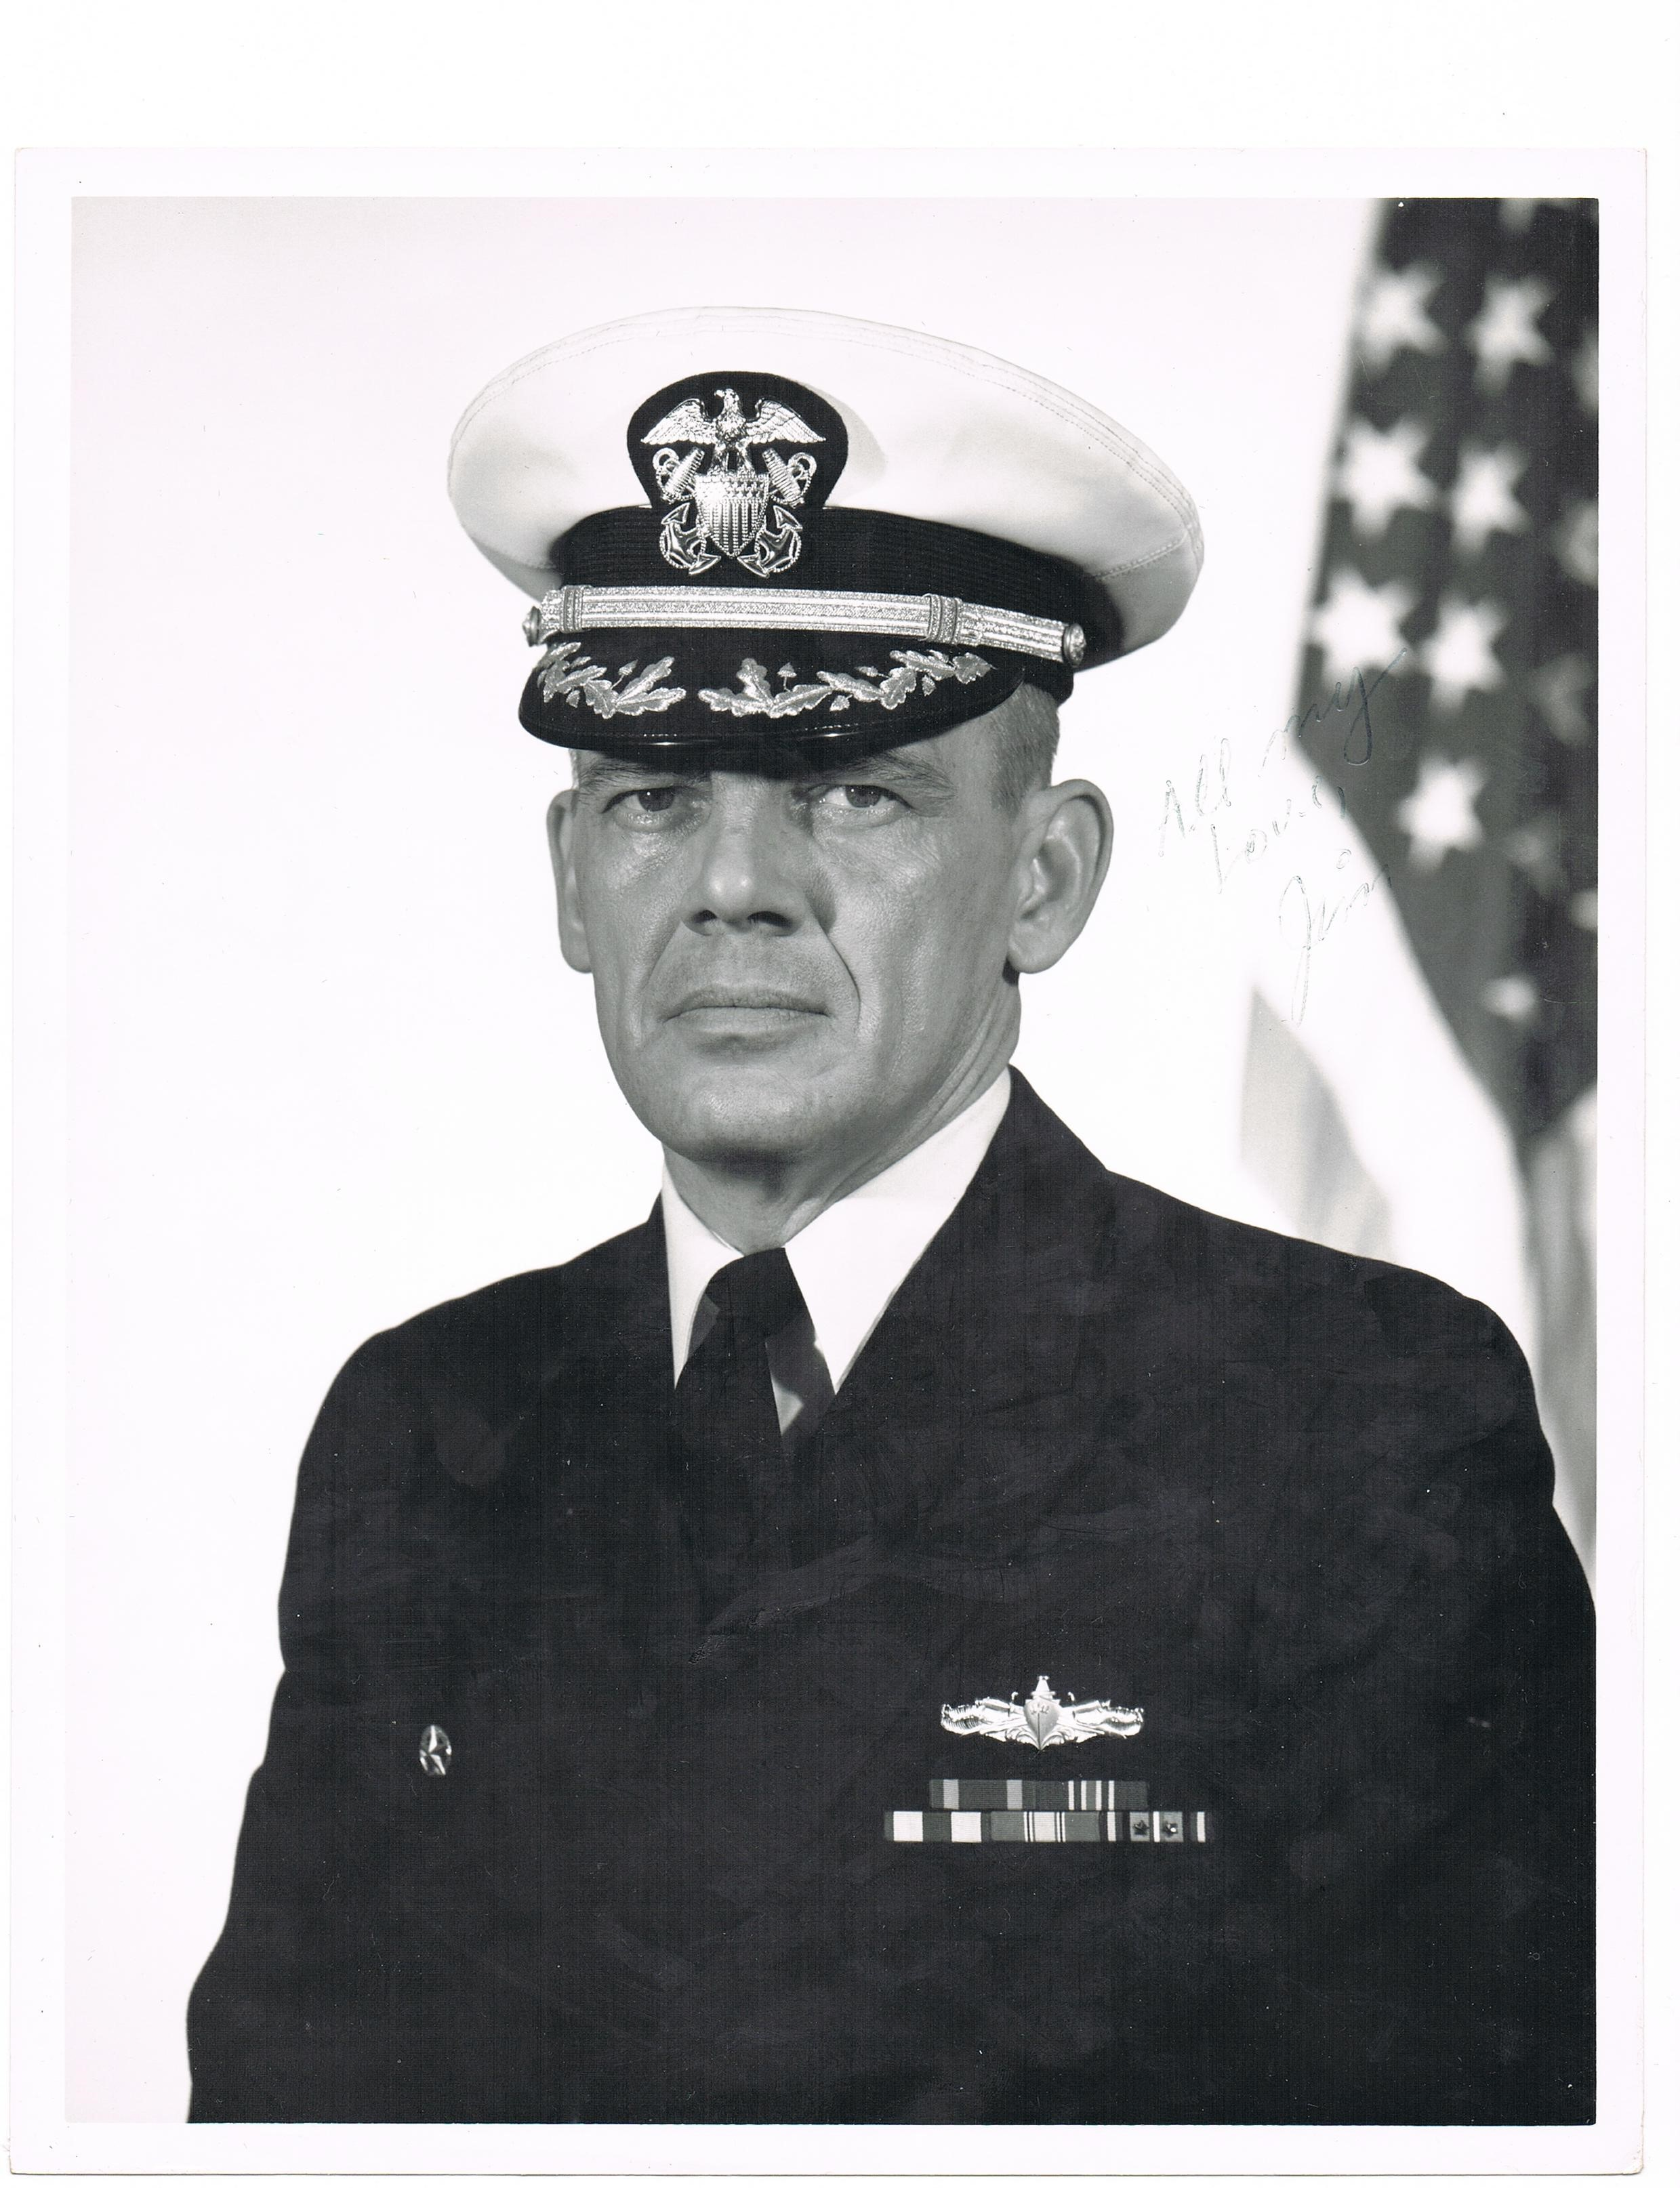 James F. Featherstone